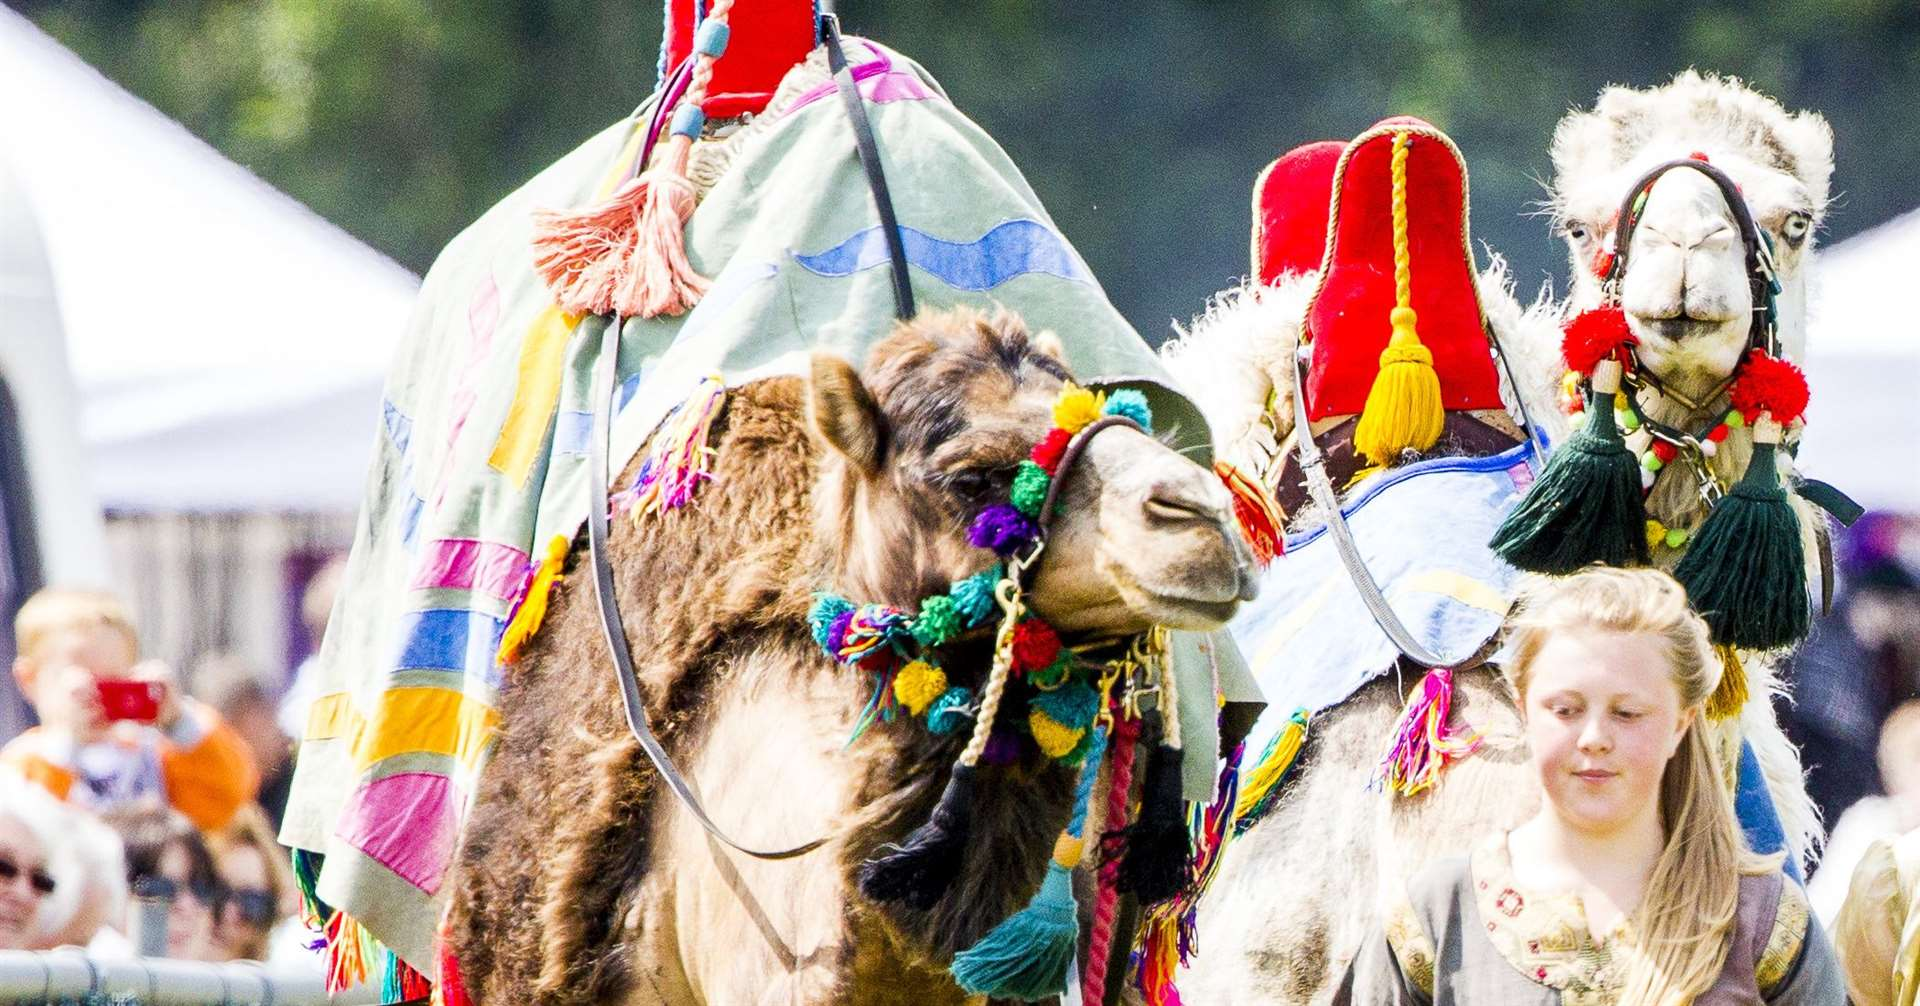 Racing camels are coming to the Kent County Show next summer